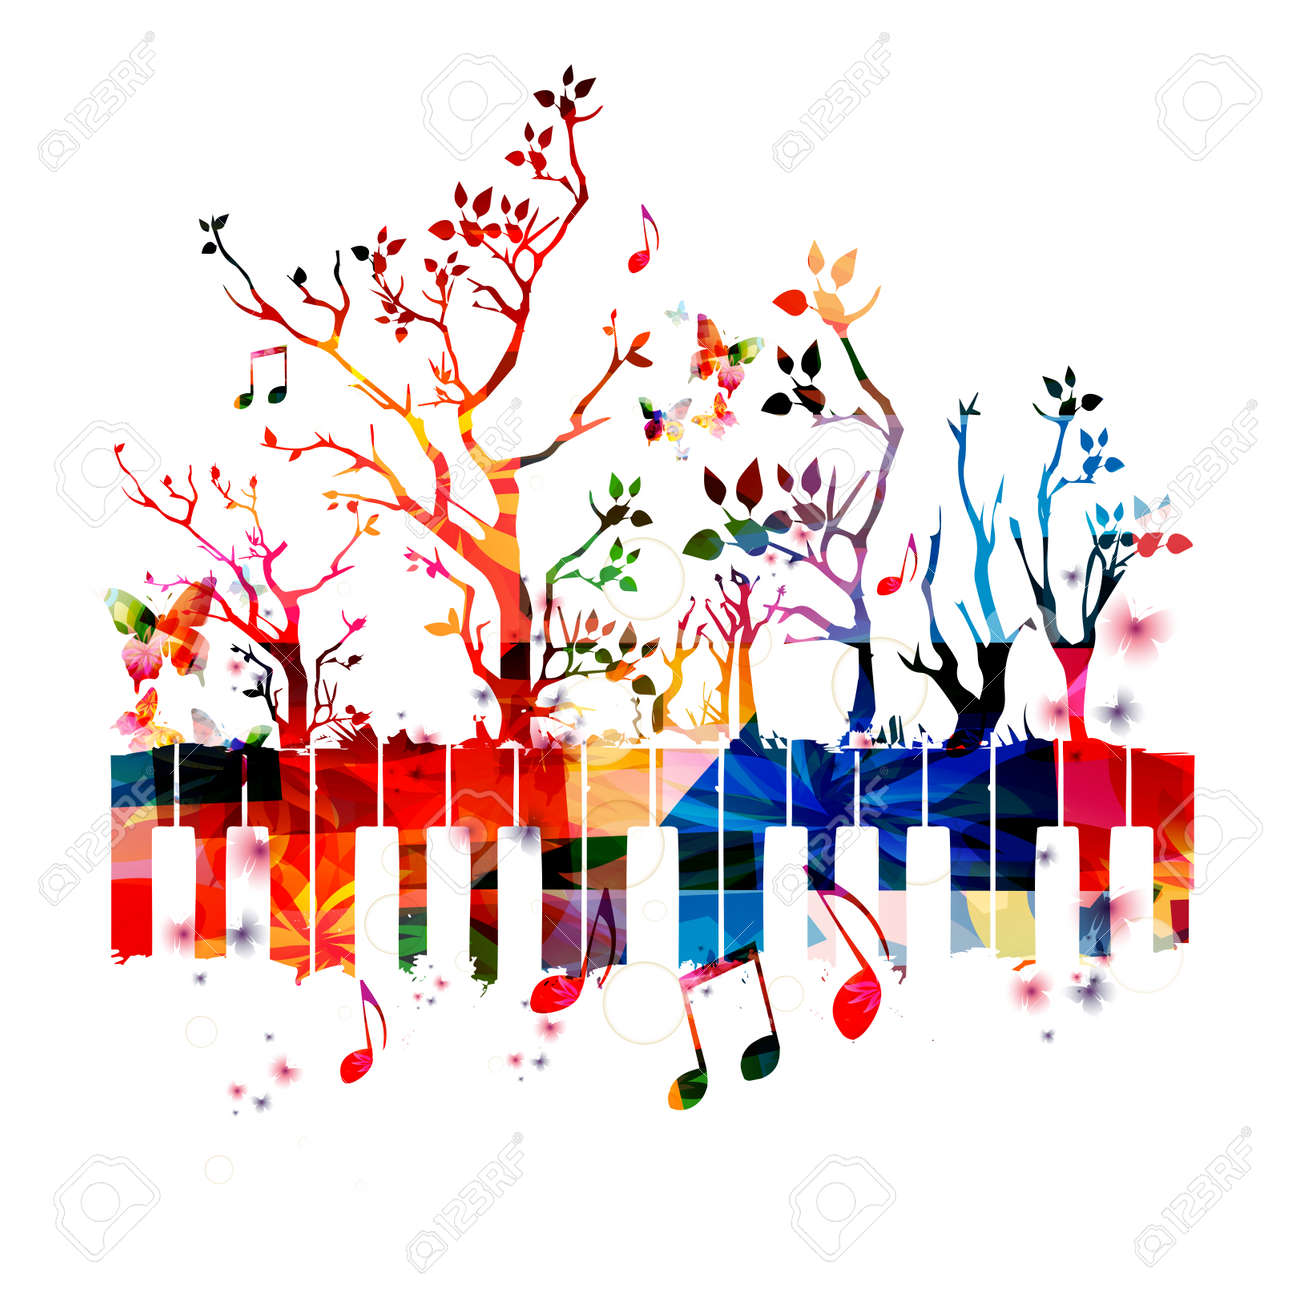 colorful piano keyboard with trees and music notes royalty free rh 123rf com Music Notes and Piano Keys Music Notes Border